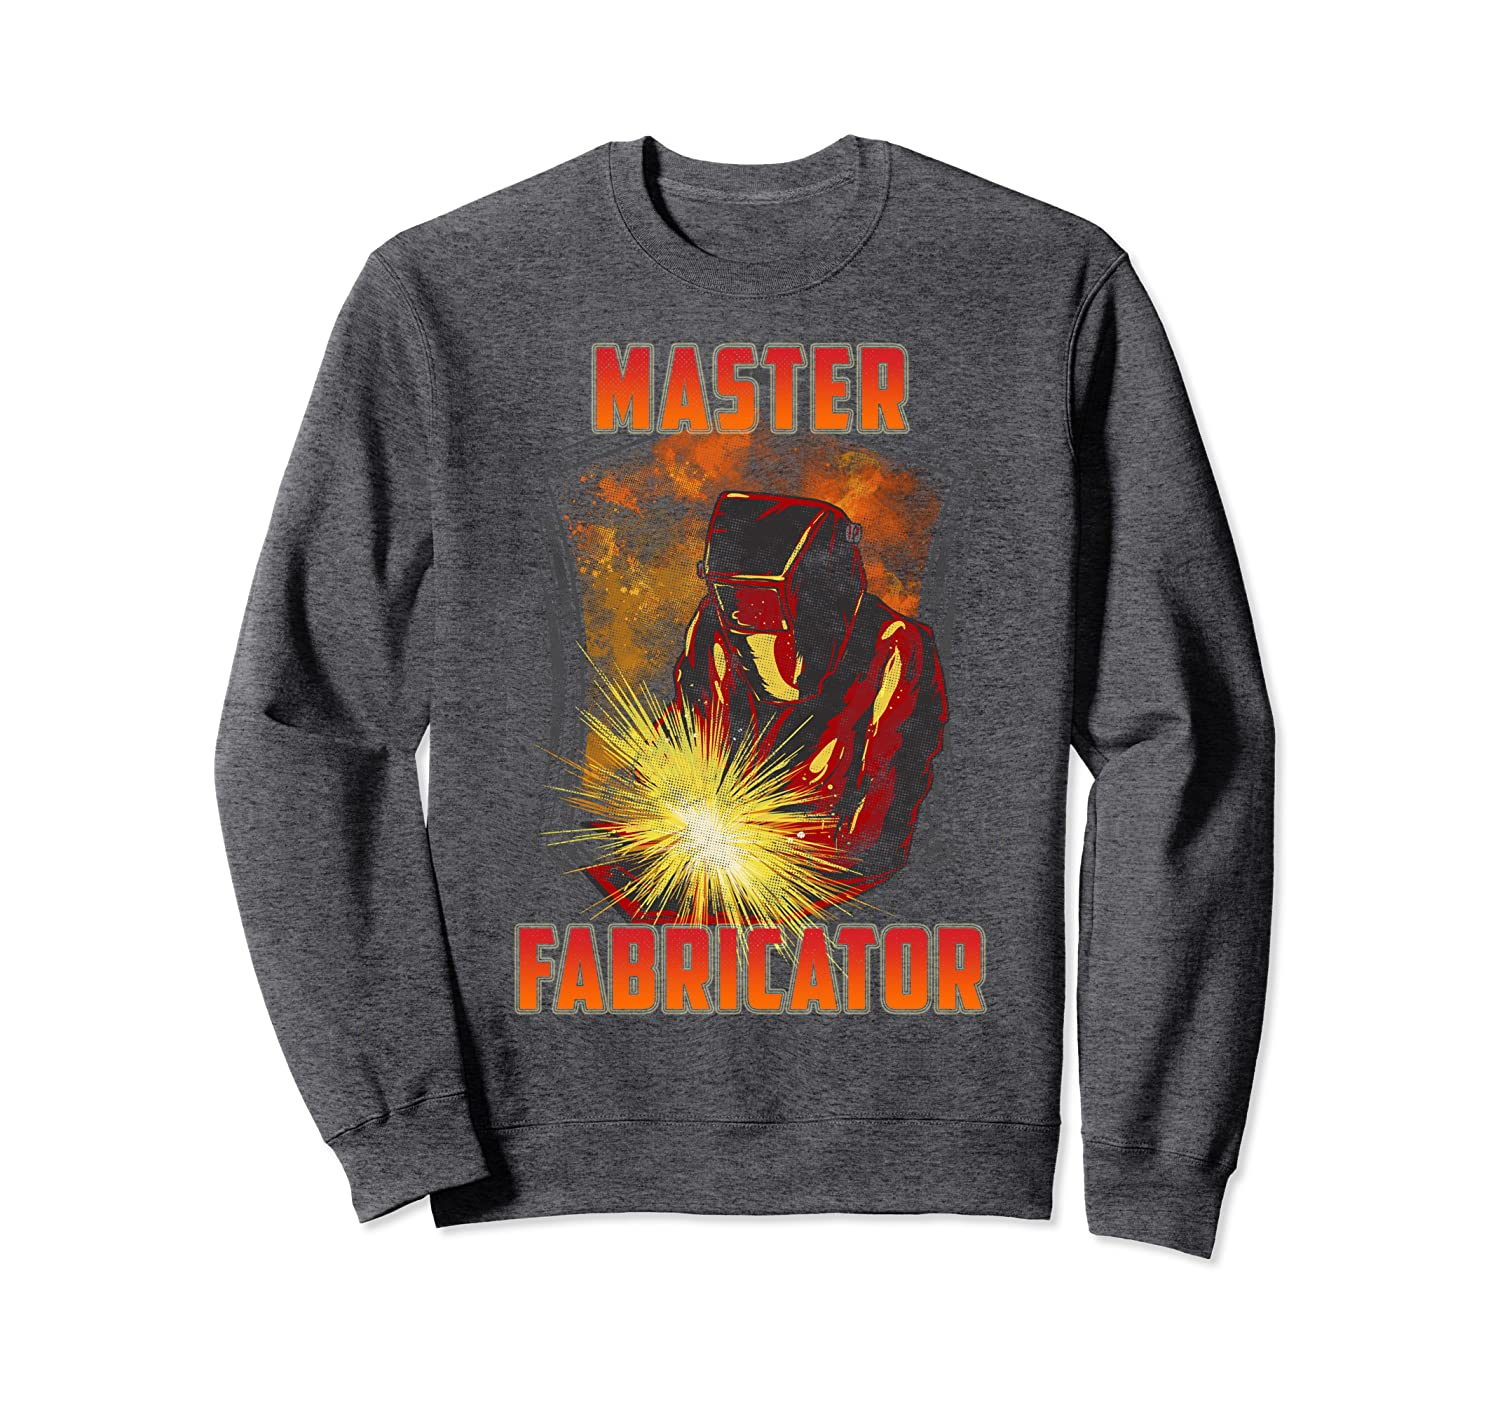 Master Fabricator Welding Metals Sewing Expert Sweatshirt